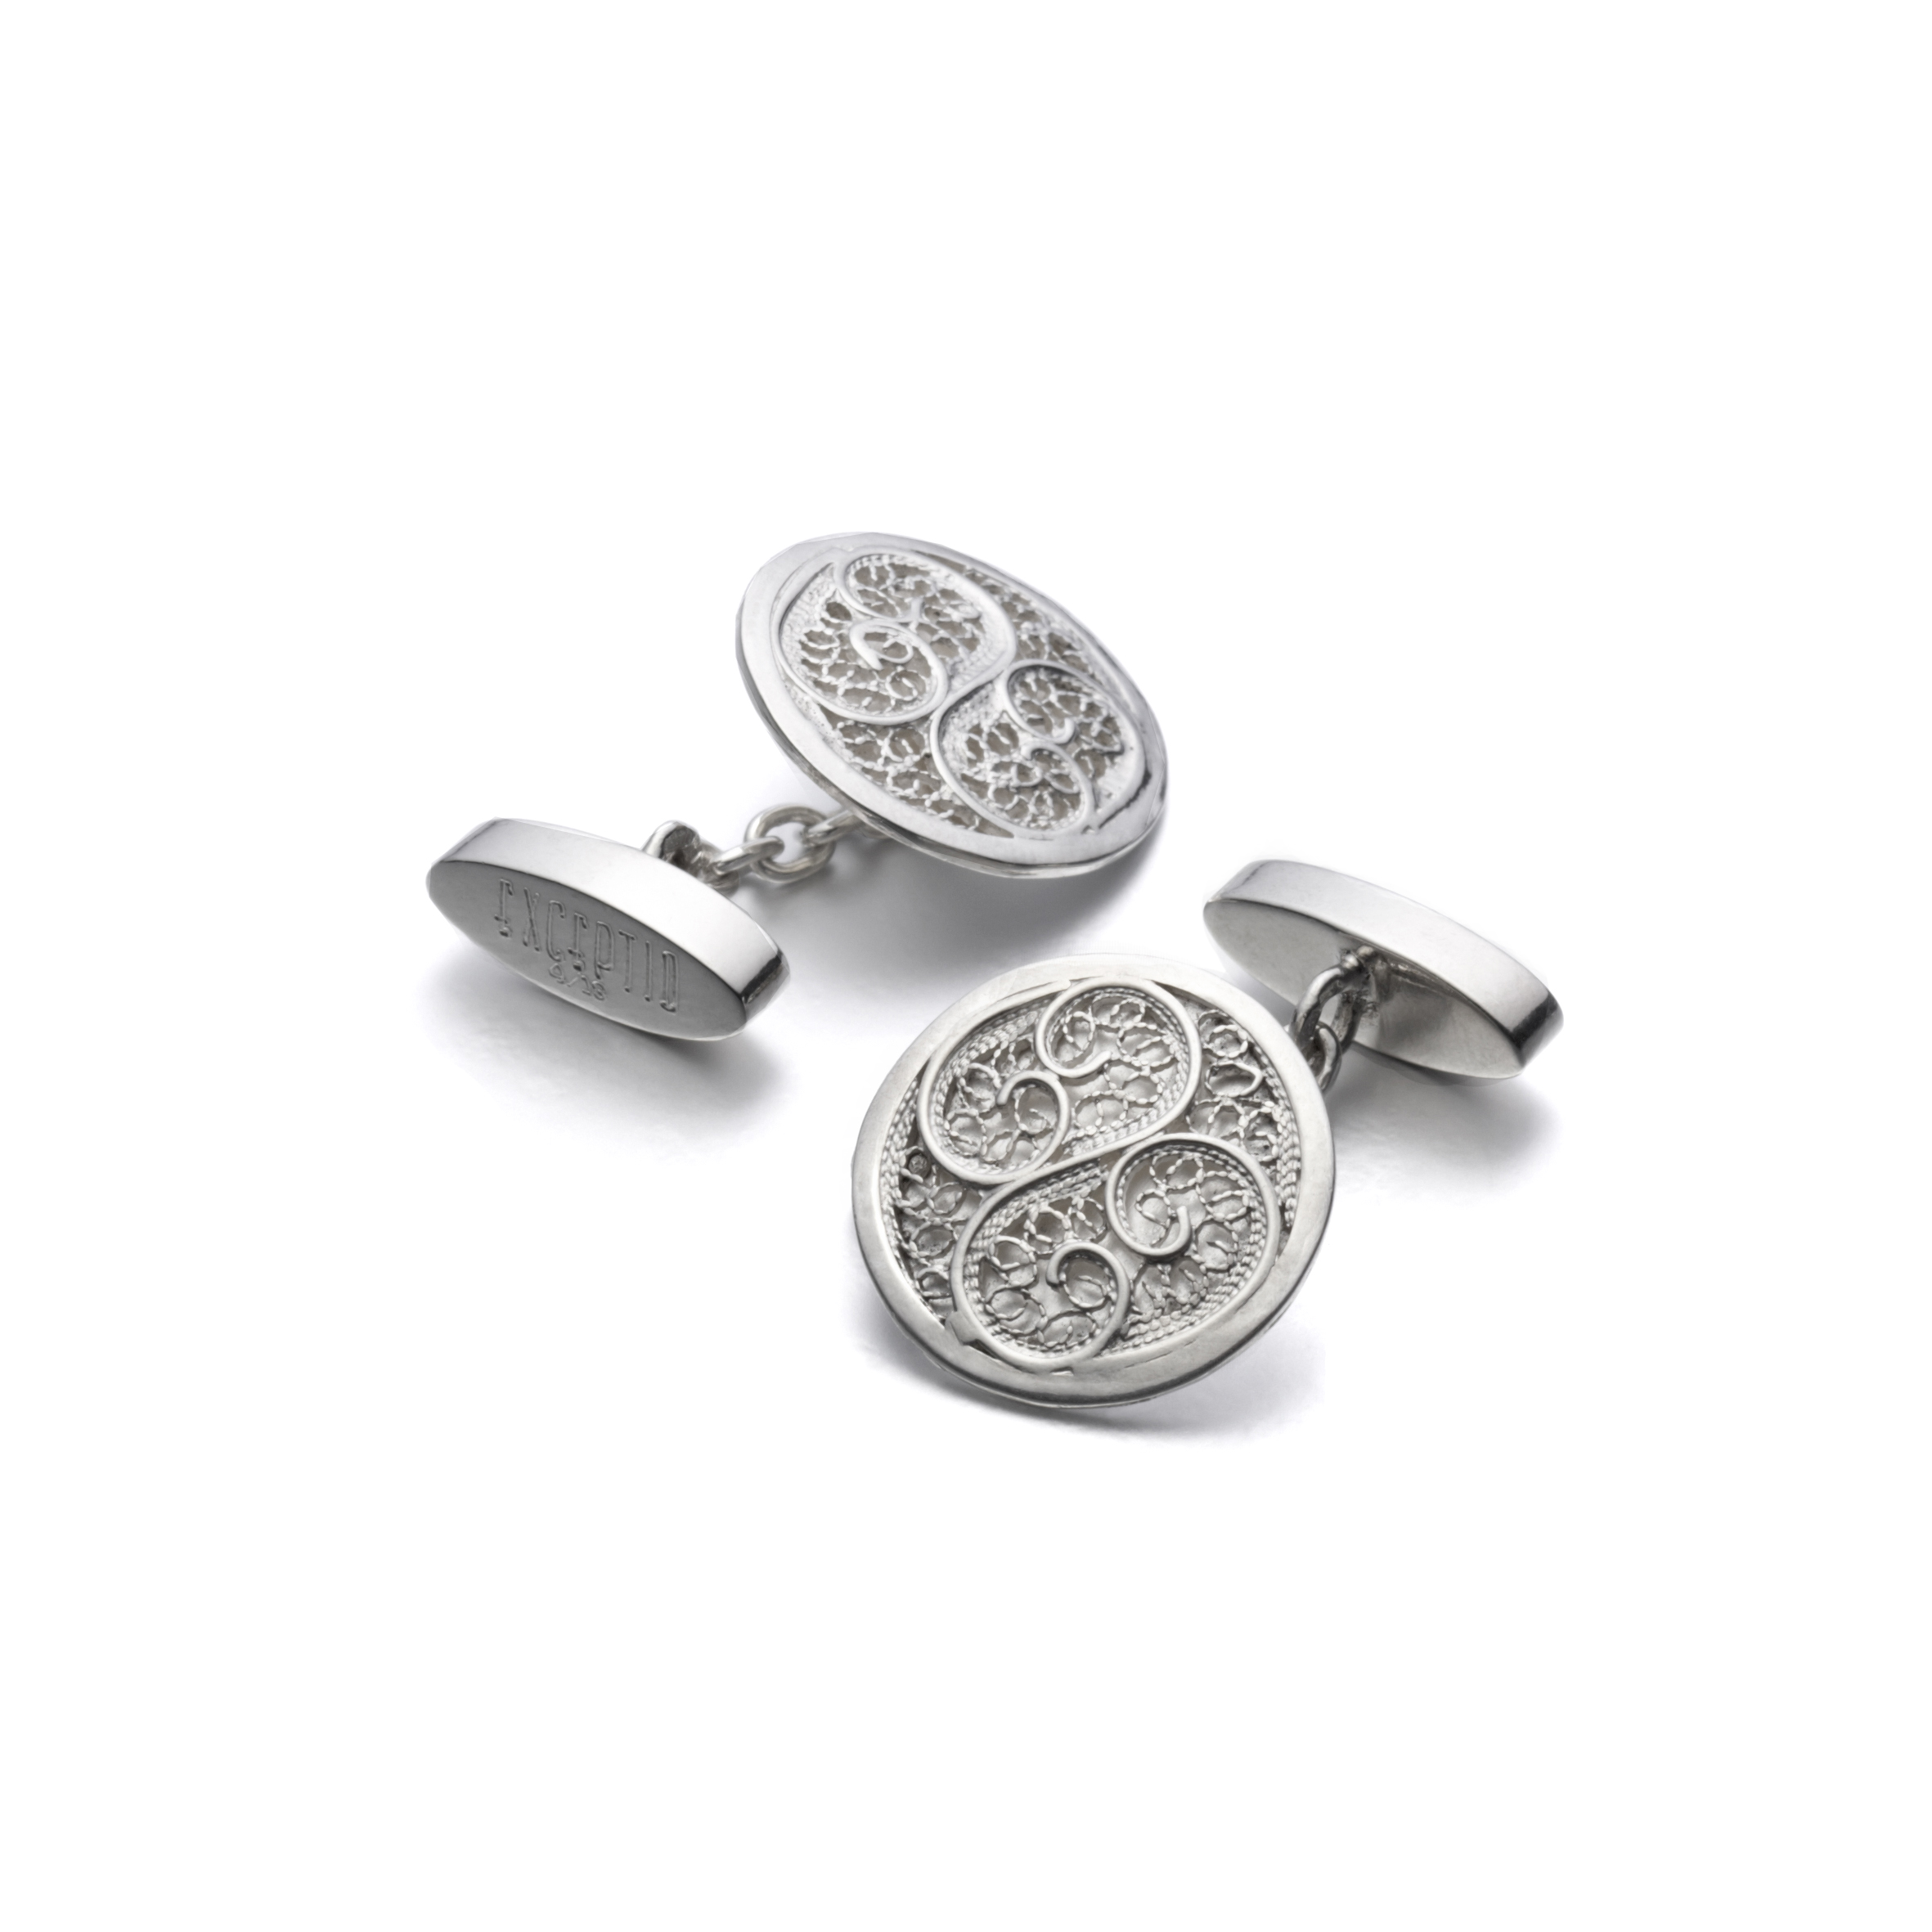 Exceptio Luxury Cufflinks Finally Available to the US ...